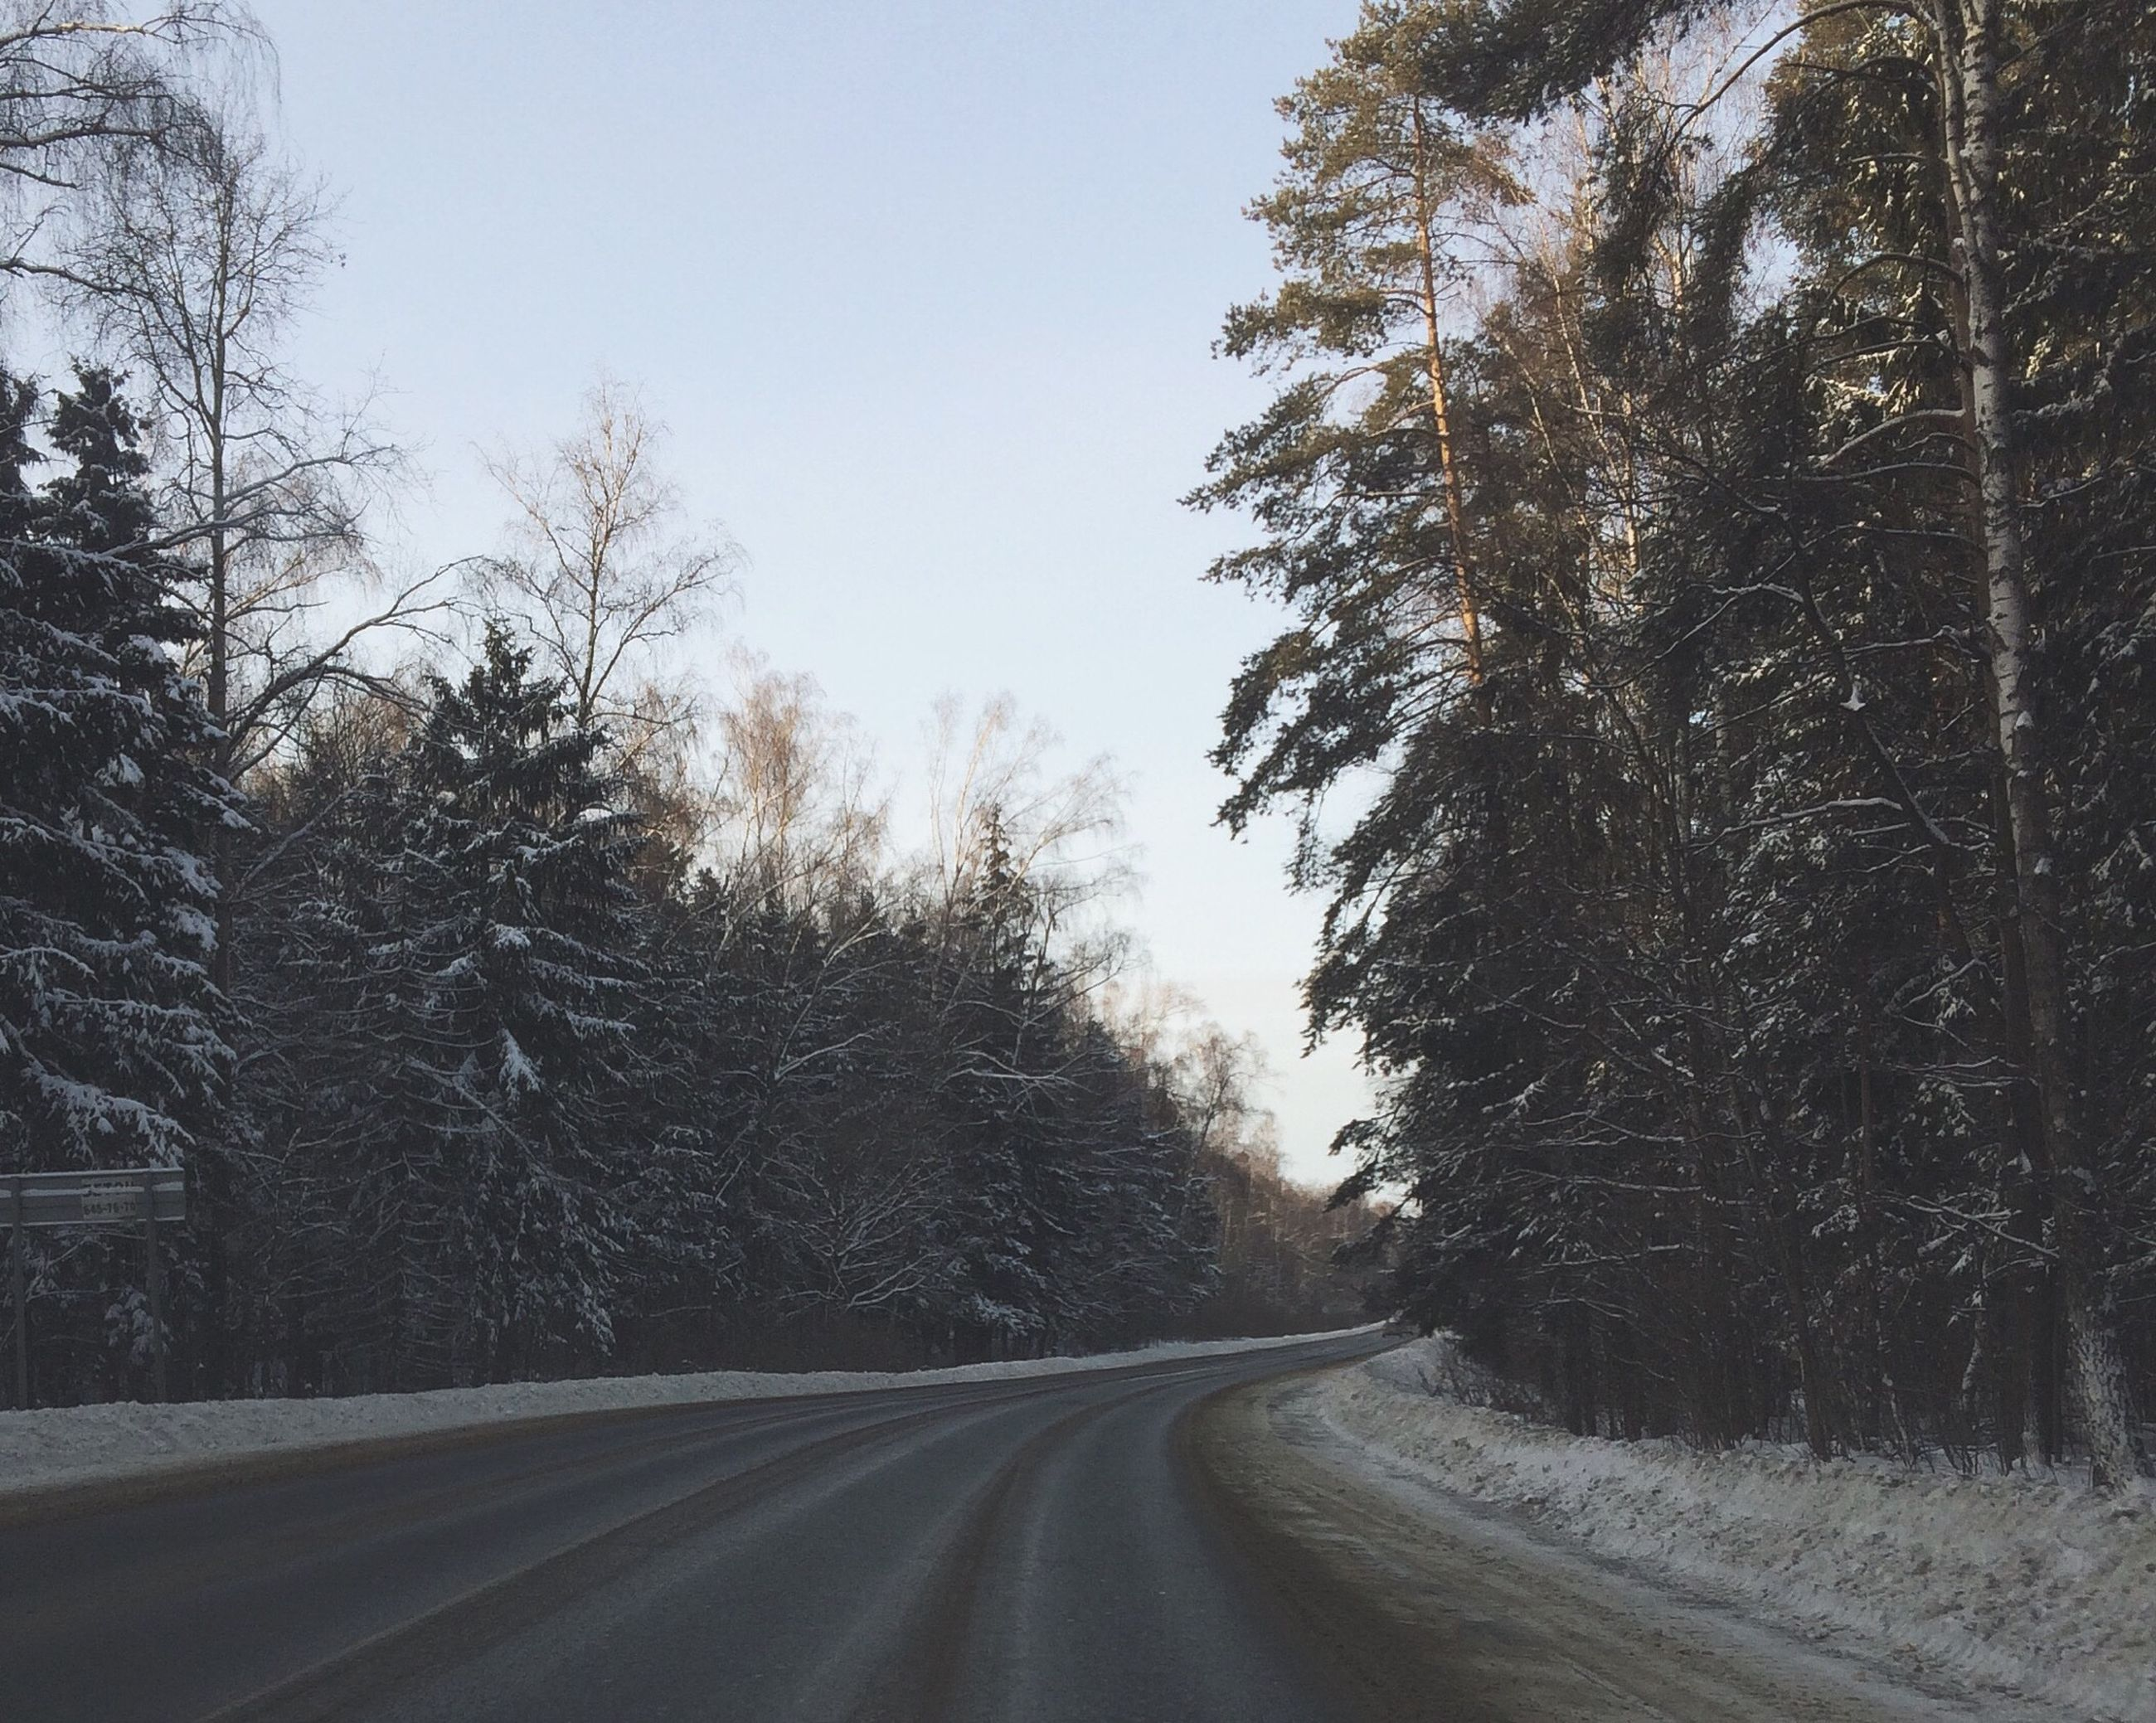 the way forward, road, tree, transportation, clear sky, diminishing perspective, snow, vanishing point, winter, empty road, cold temperature, country road, tranquil scene, nature, tranquility, sky, street, landscape, beauty in nature, road marking